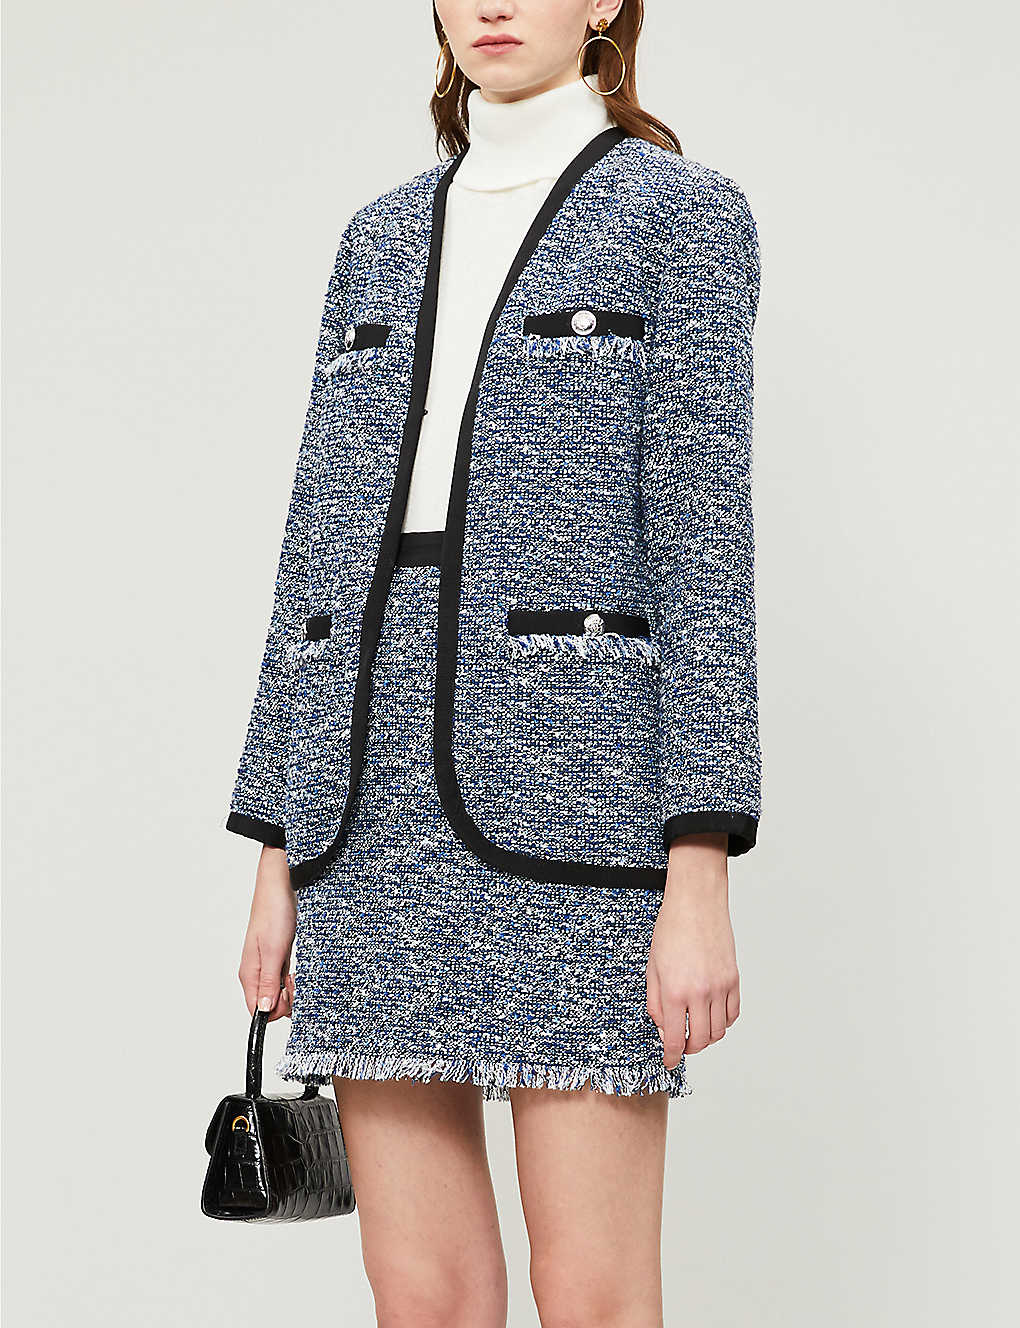 Claudie Pierlot Vadrouille Tweed Blazer In Gray